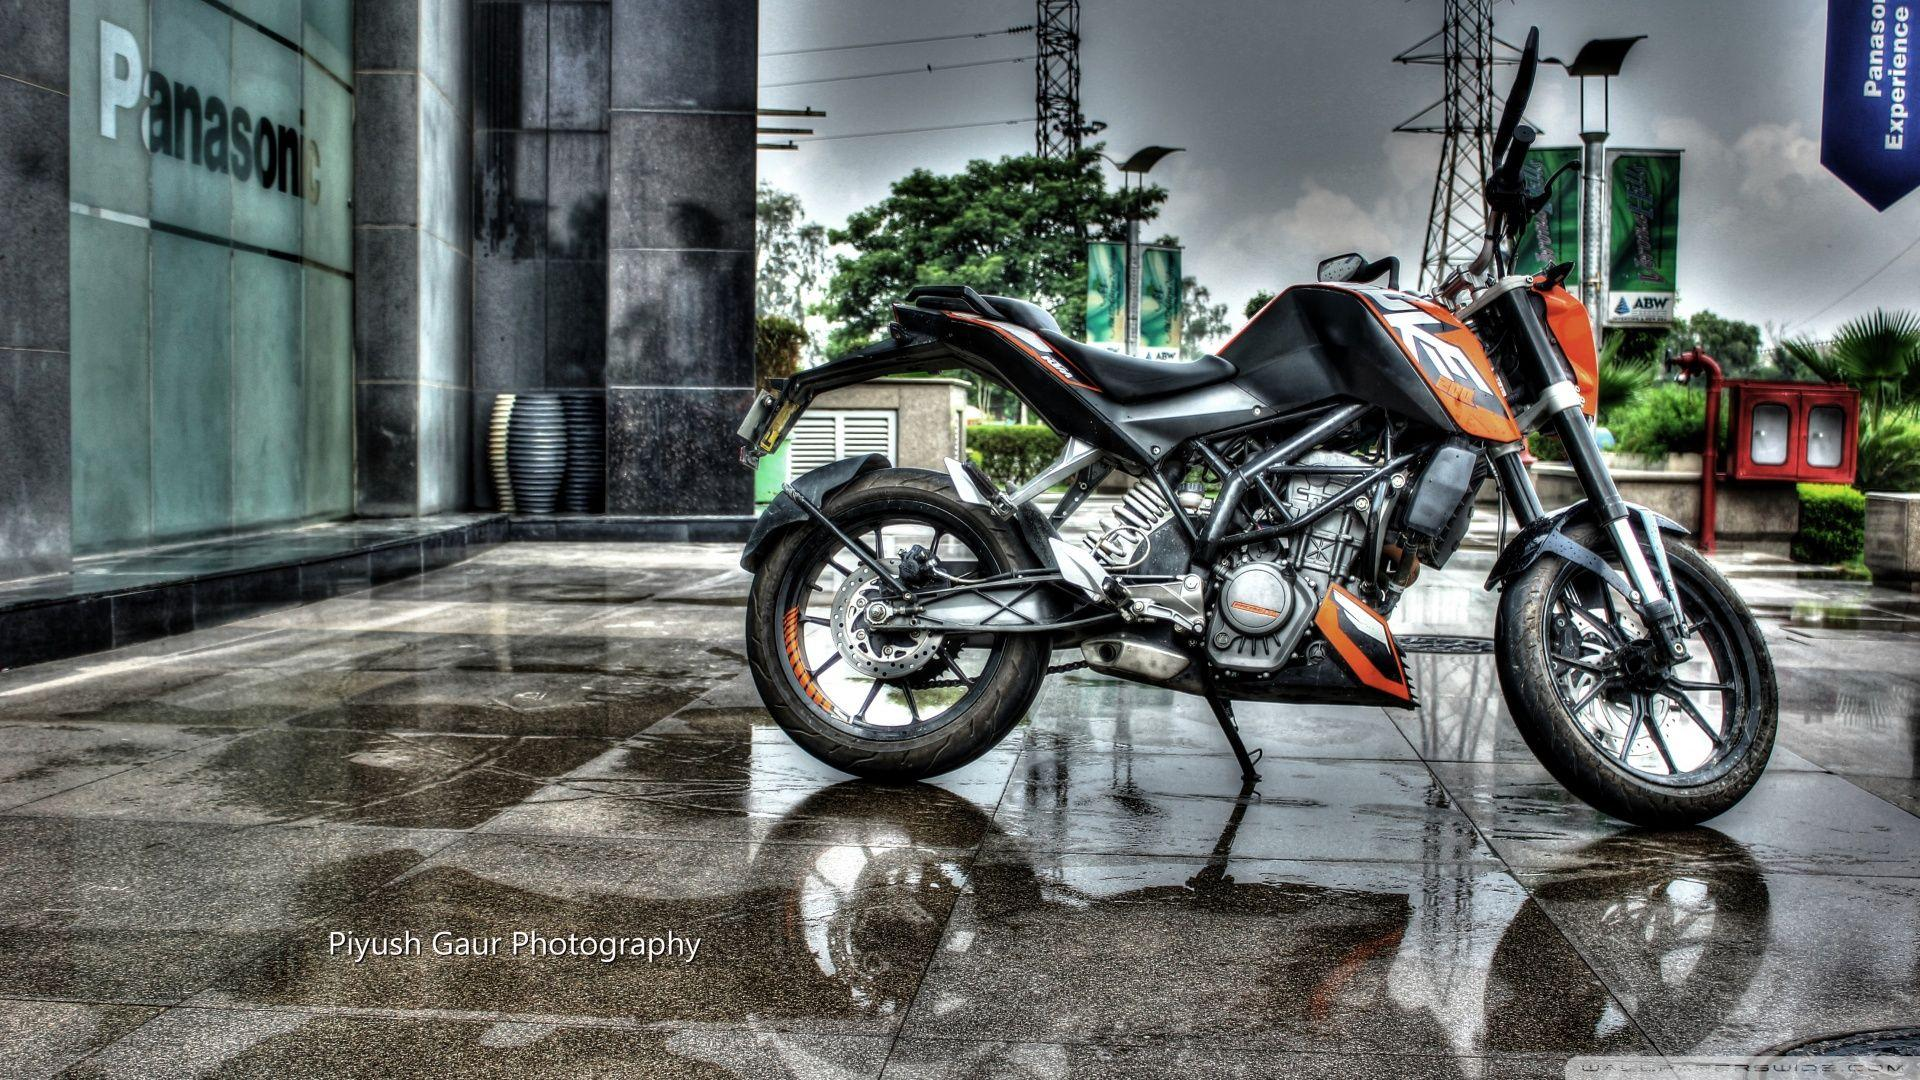 KTM DUKE 200 HD desktop wallpapers : Widescreen : High Definition